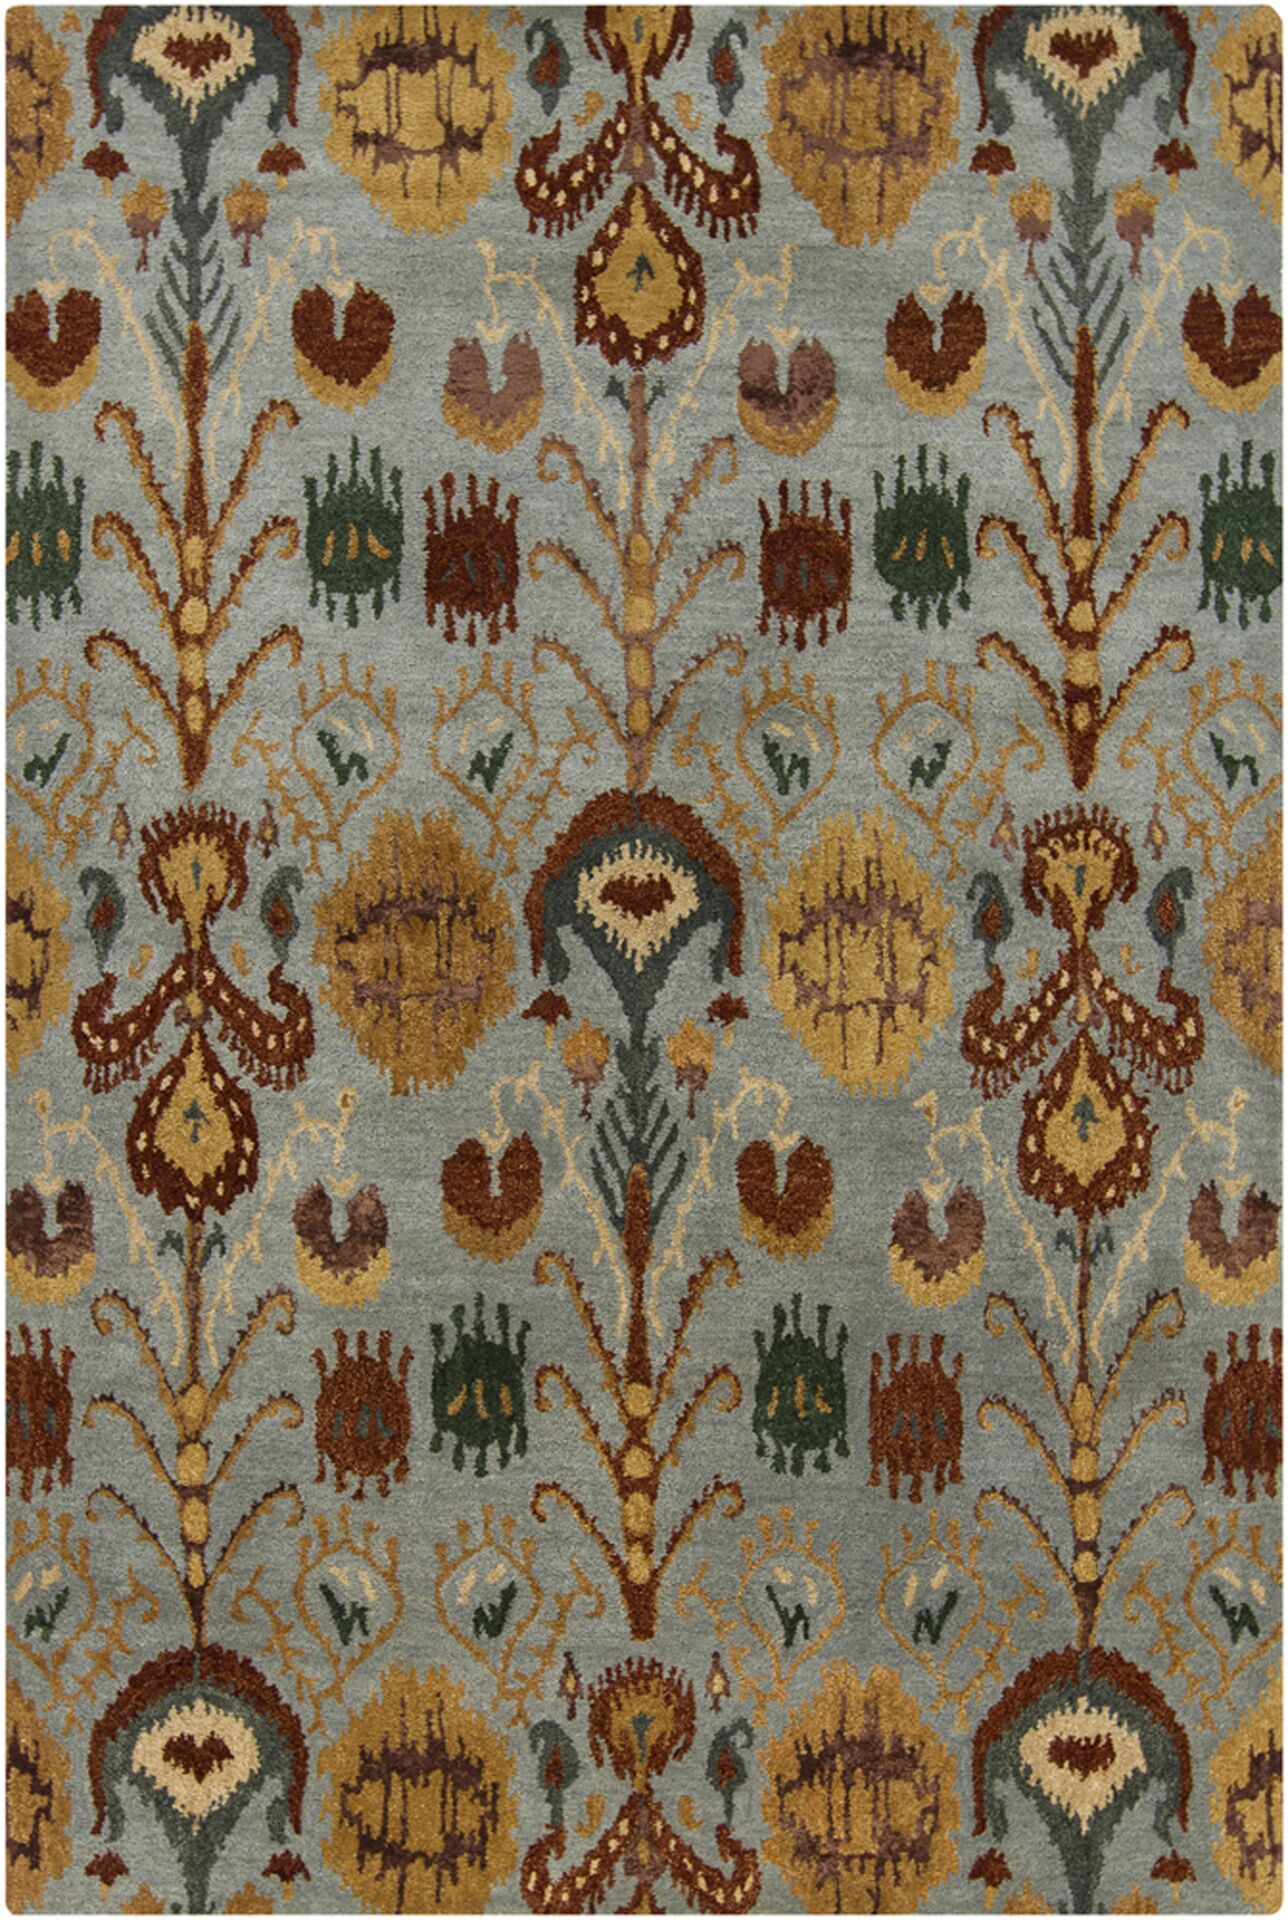 Forbis Tan Abstract Area Rug Rug Size: 9' x 13'